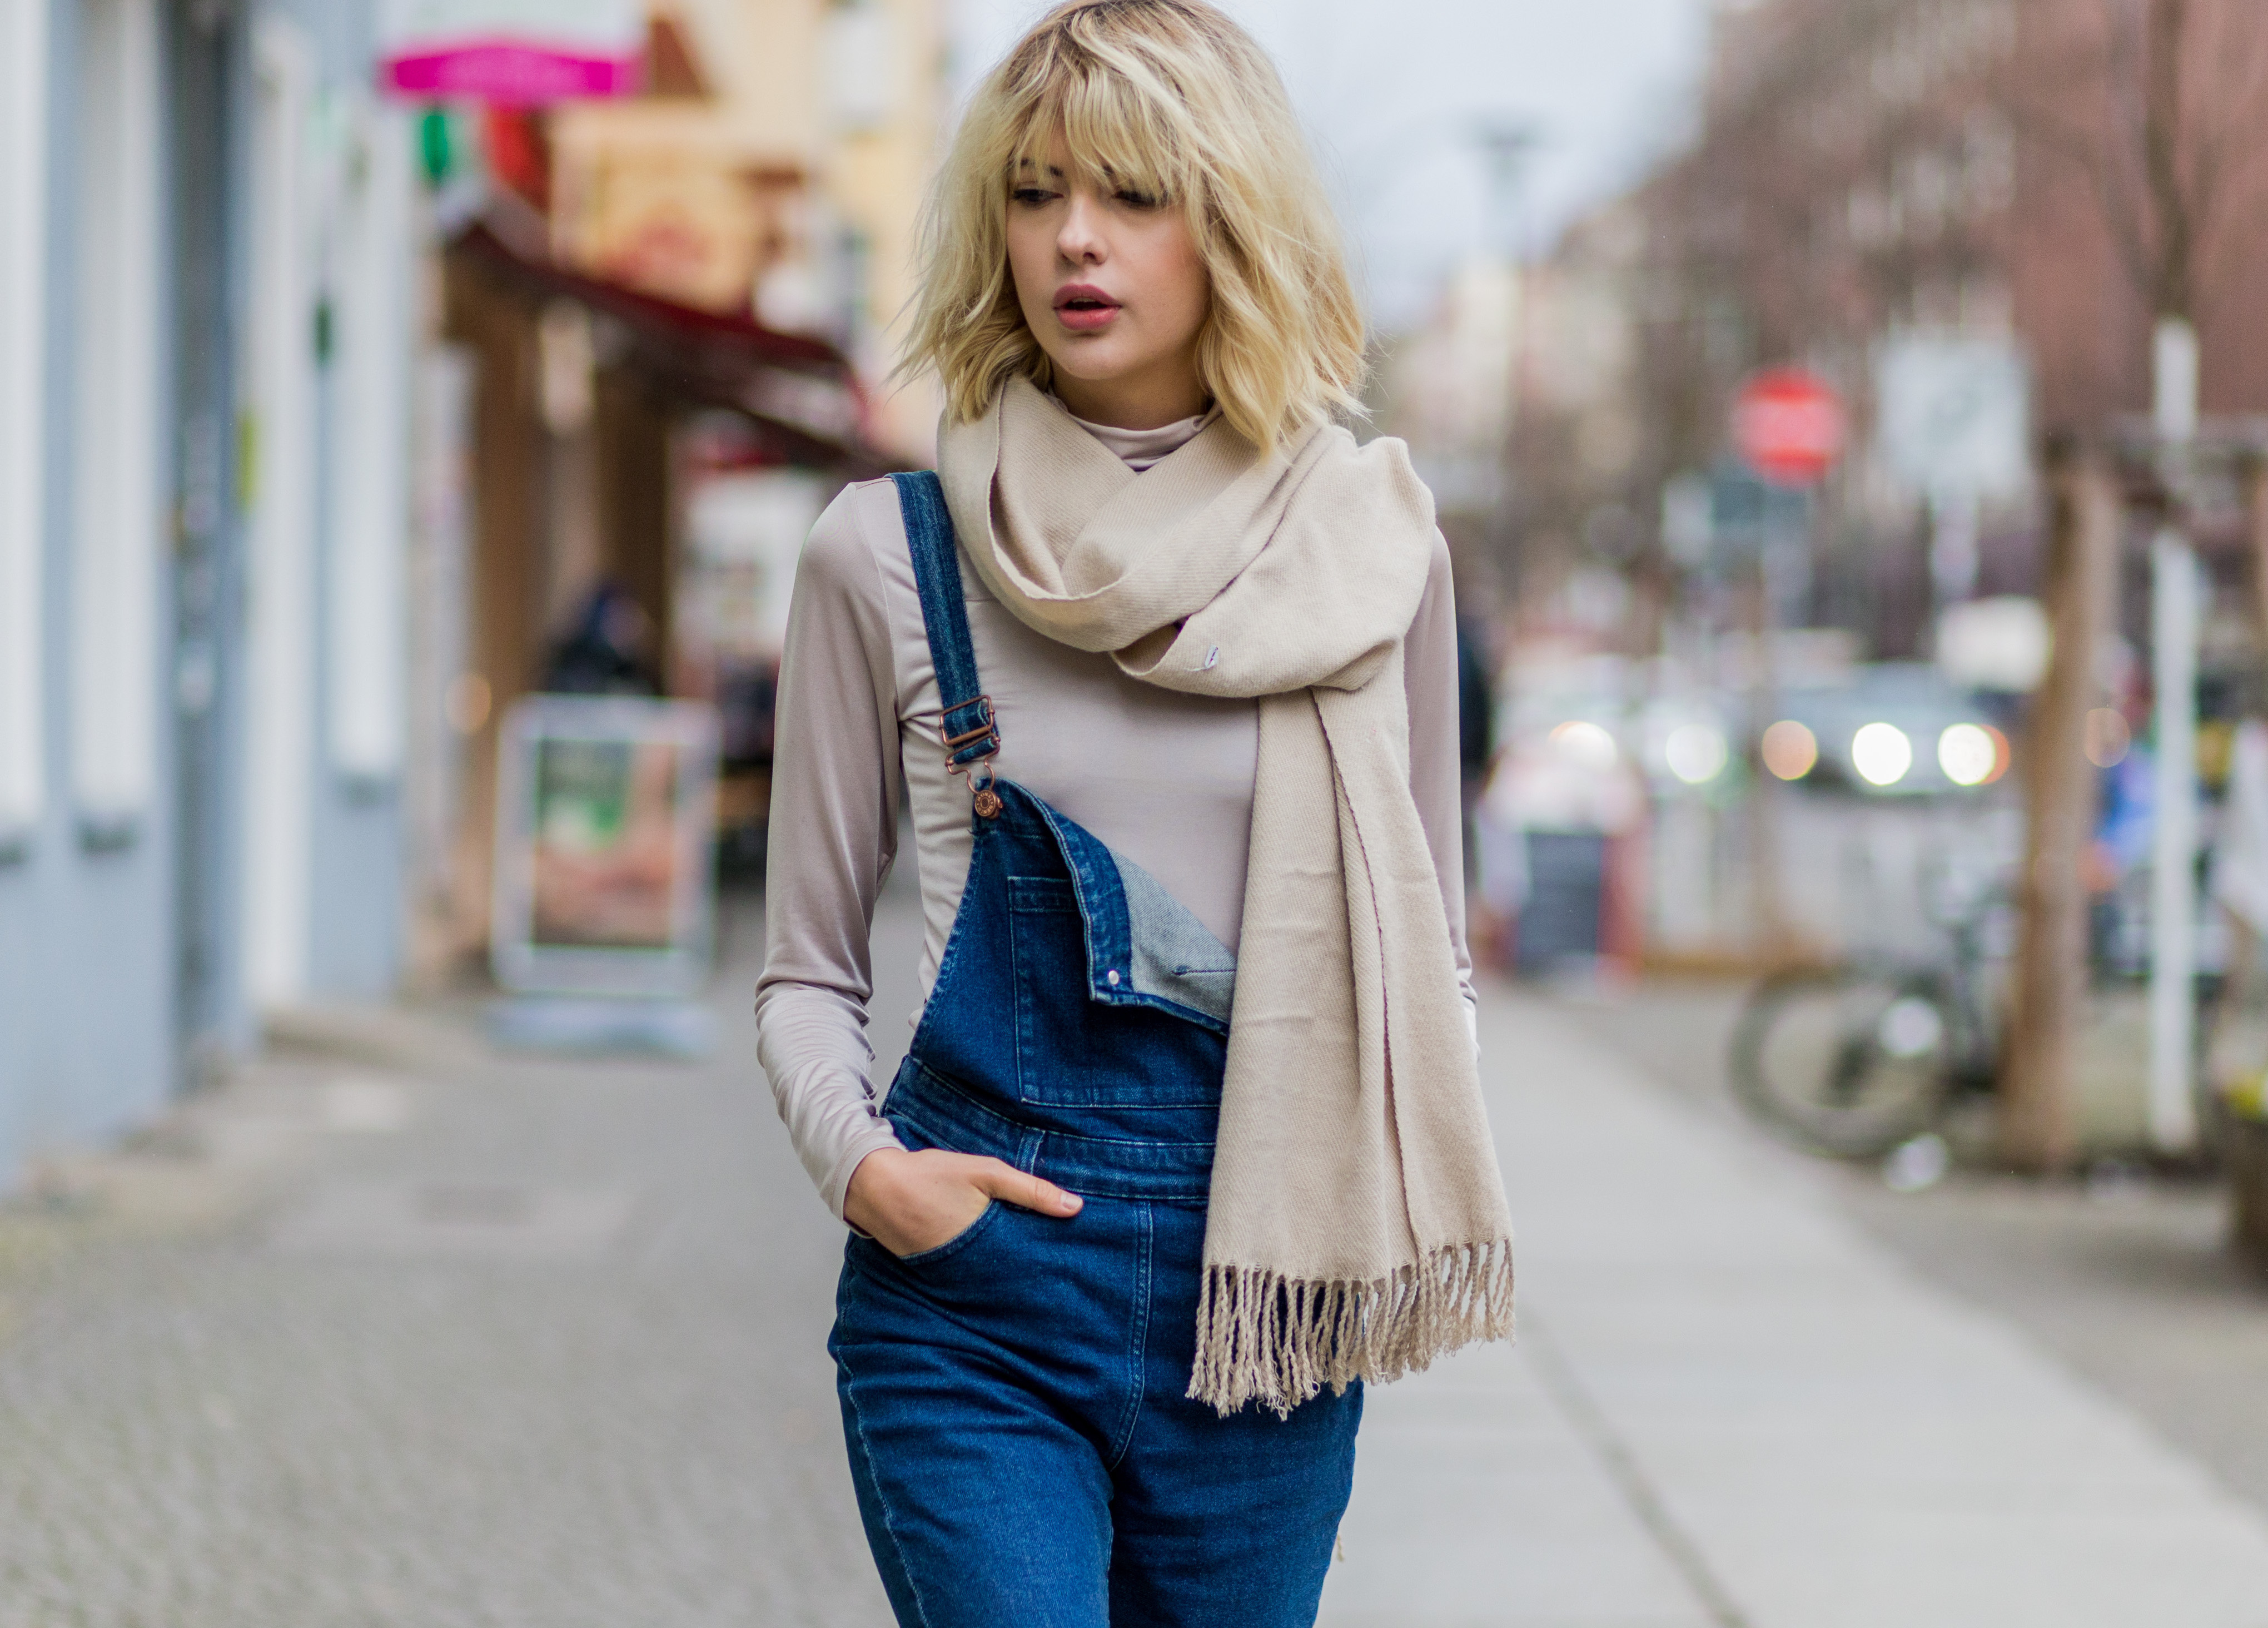 Fashion blogger Ebba Zingmark wearing dark denim overalls, a white tee shirt, and a camel-colored scarf outside